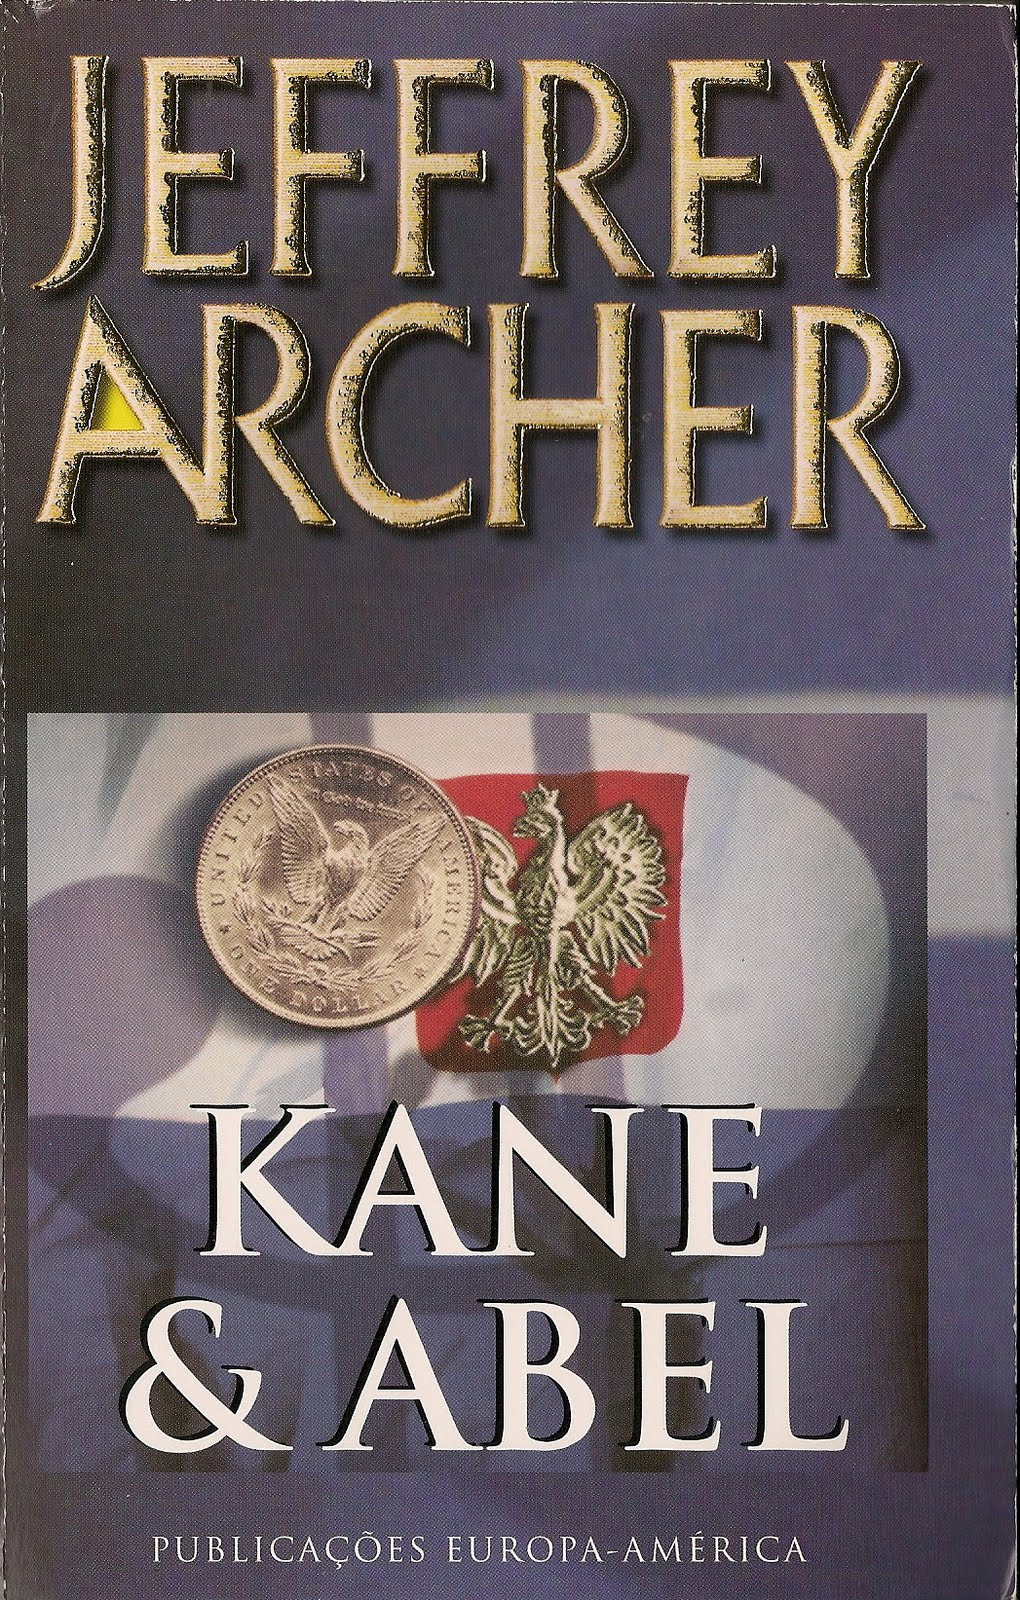 kane and abel by jeffrey archer Written by jeffrey archer, narrated by jason culp download and keep this book for free with a 30 day trial.